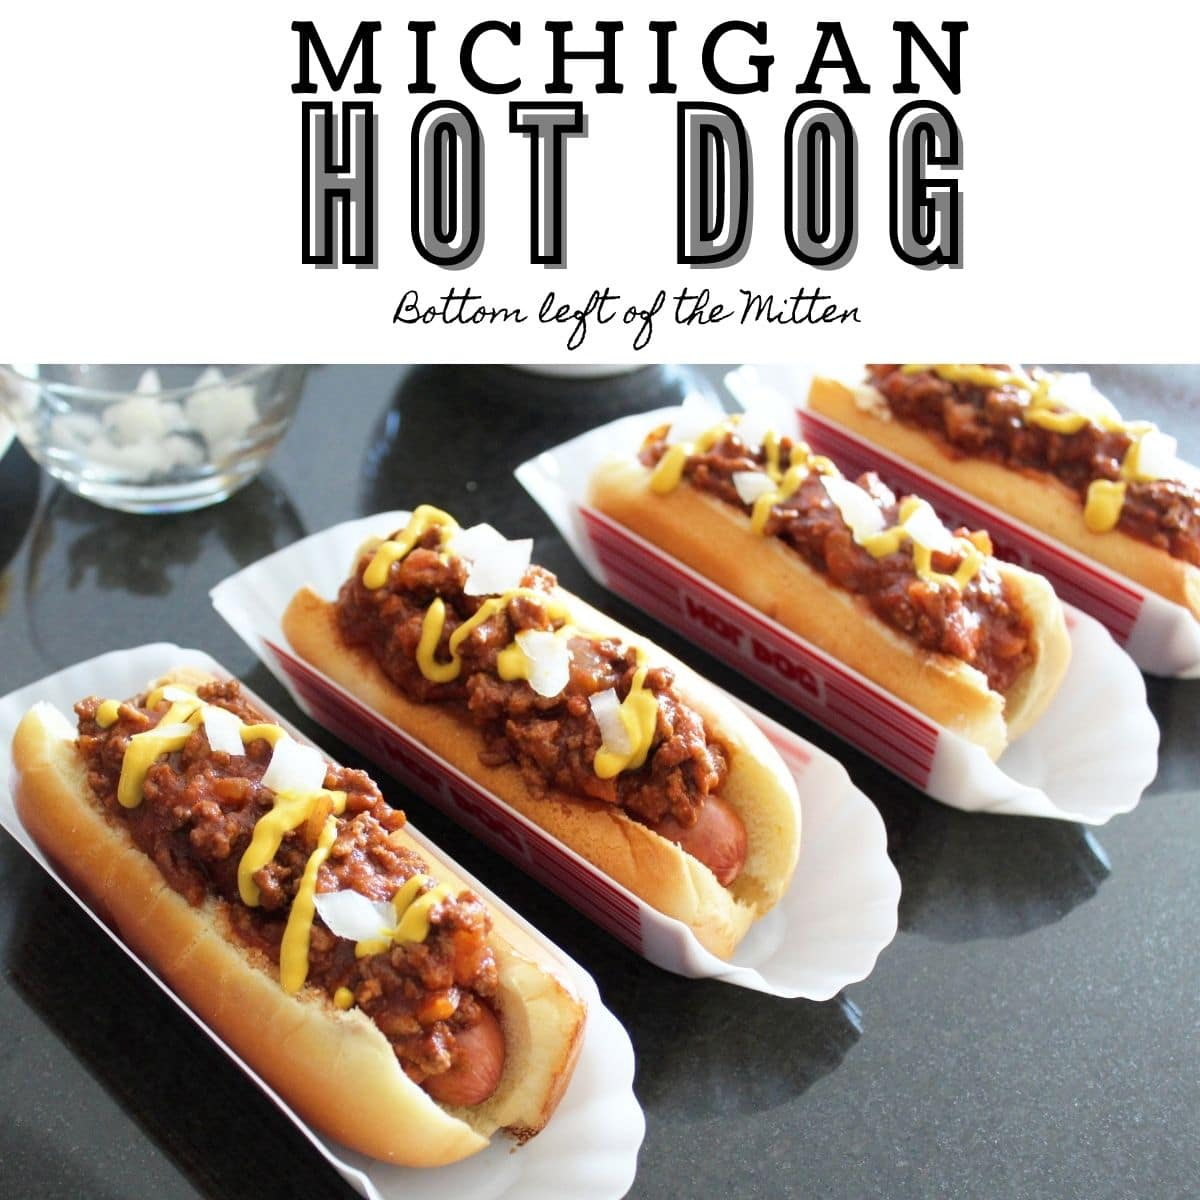 Michigan Hot Dog from Bottom Left of the Mitten